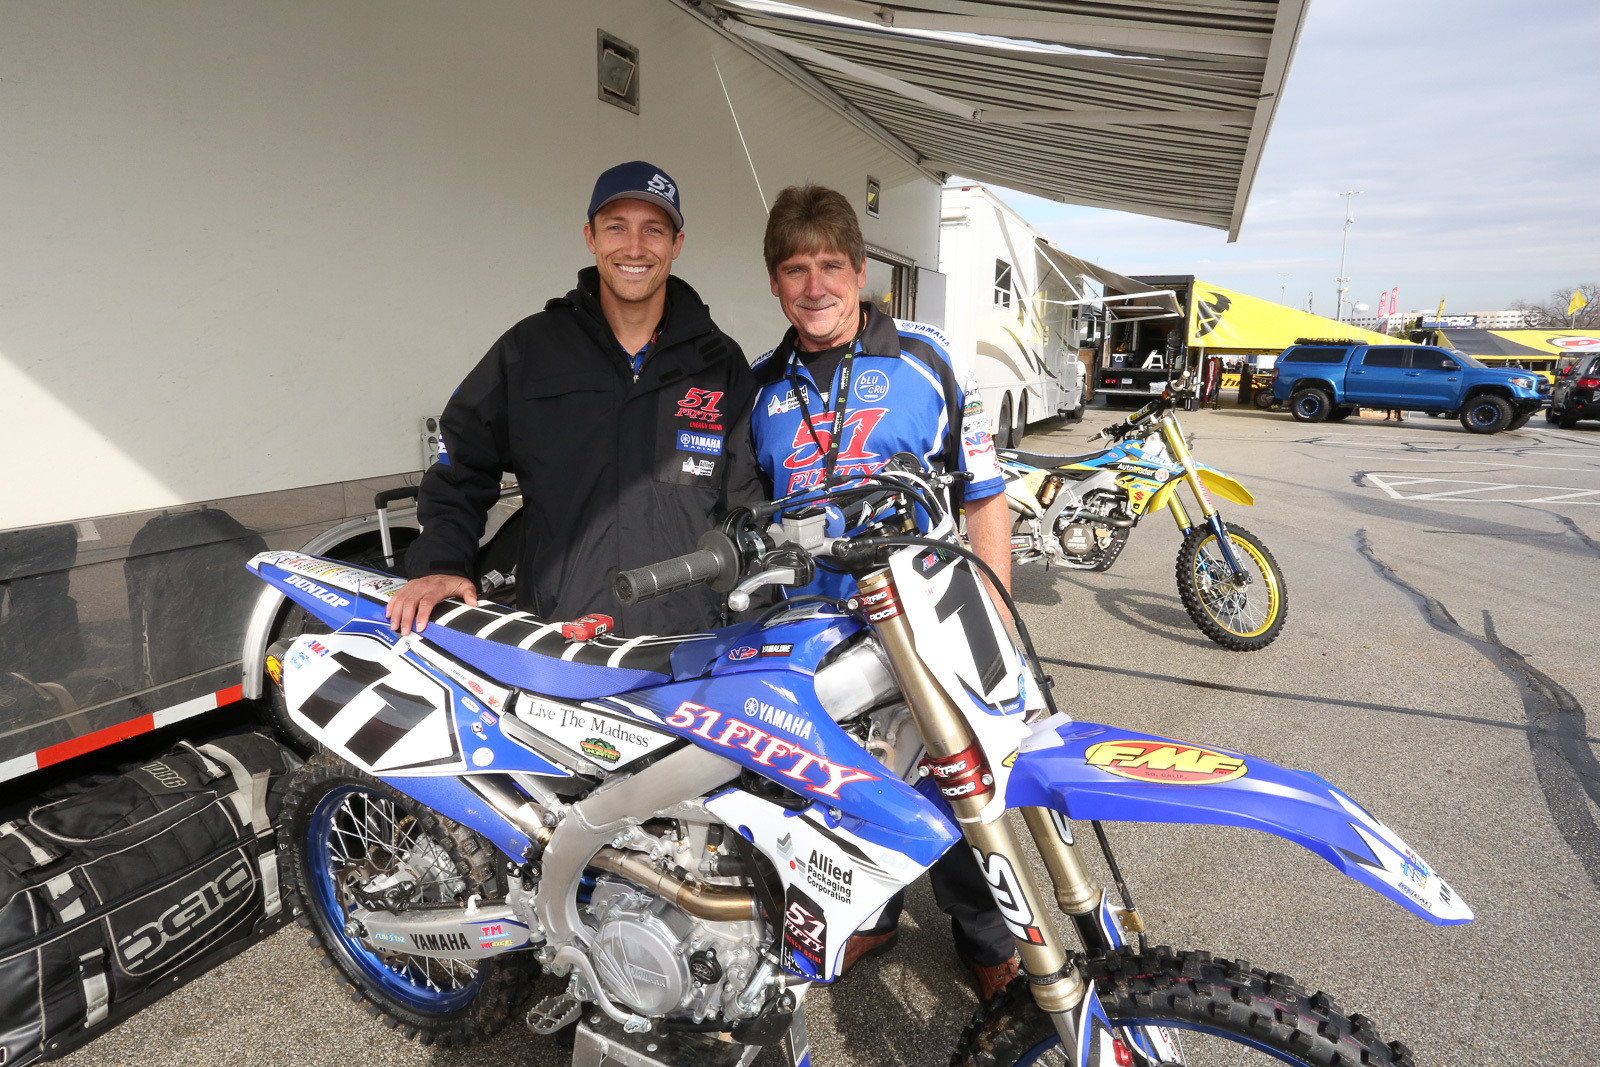 Kyle Chisholm was going to be pitting out of a rental car this weekend, as he moves to the 450 class after working with 51Fifty on the West Coast. Fortunately, he's got lots of friends. The Rock River crew hauled his bike and fuel, and he was camping here with the rig that Big James Stewart drove out for Malcolm's racing efforts.